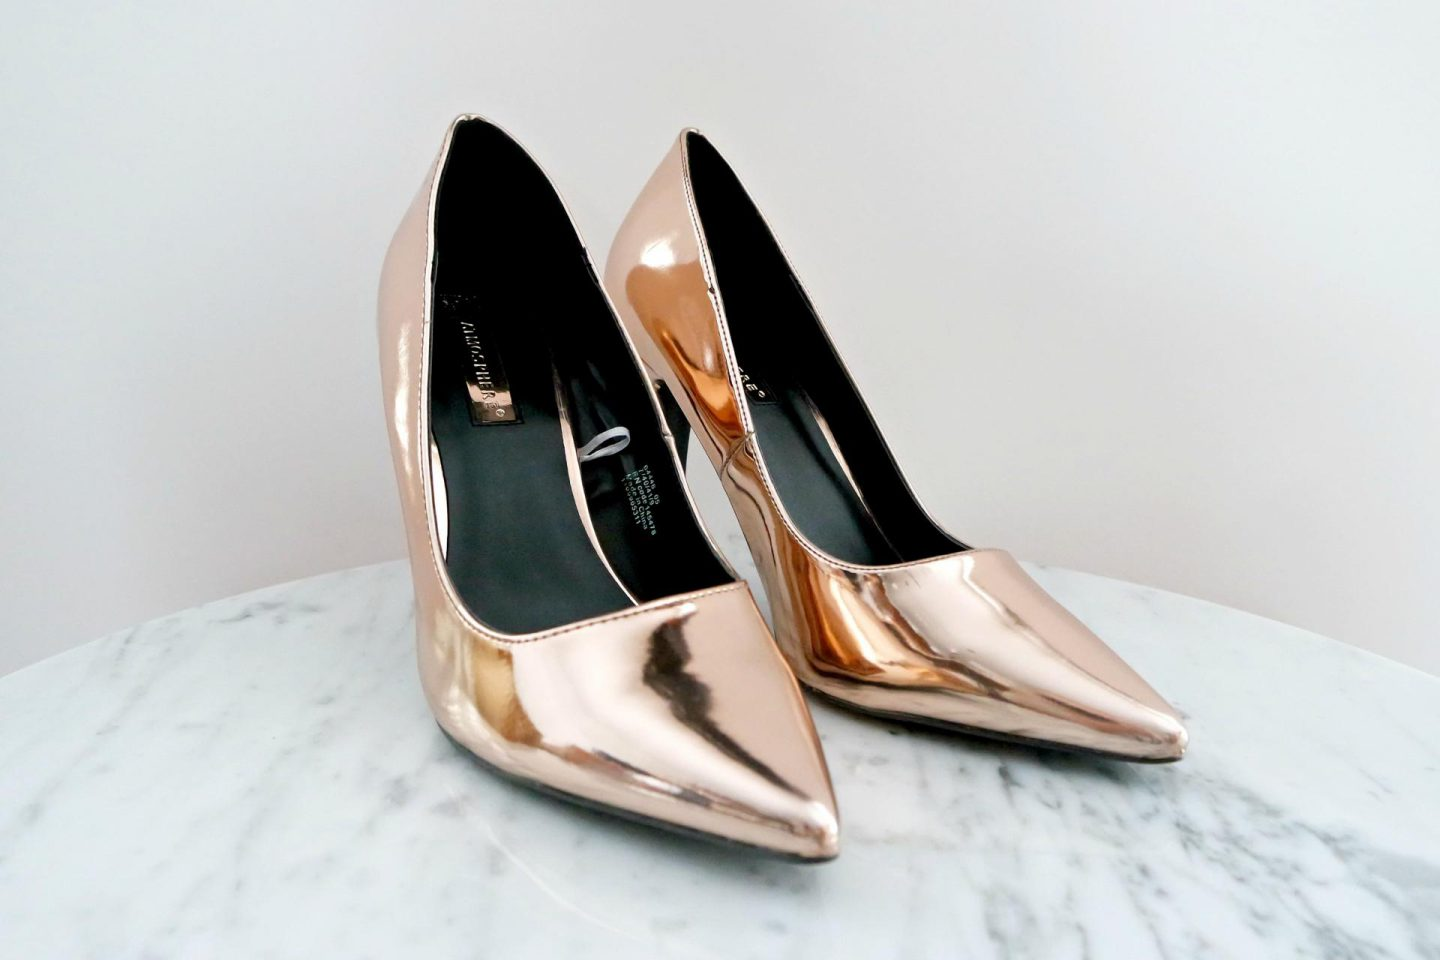 primark shoplog november rose gouden pumps